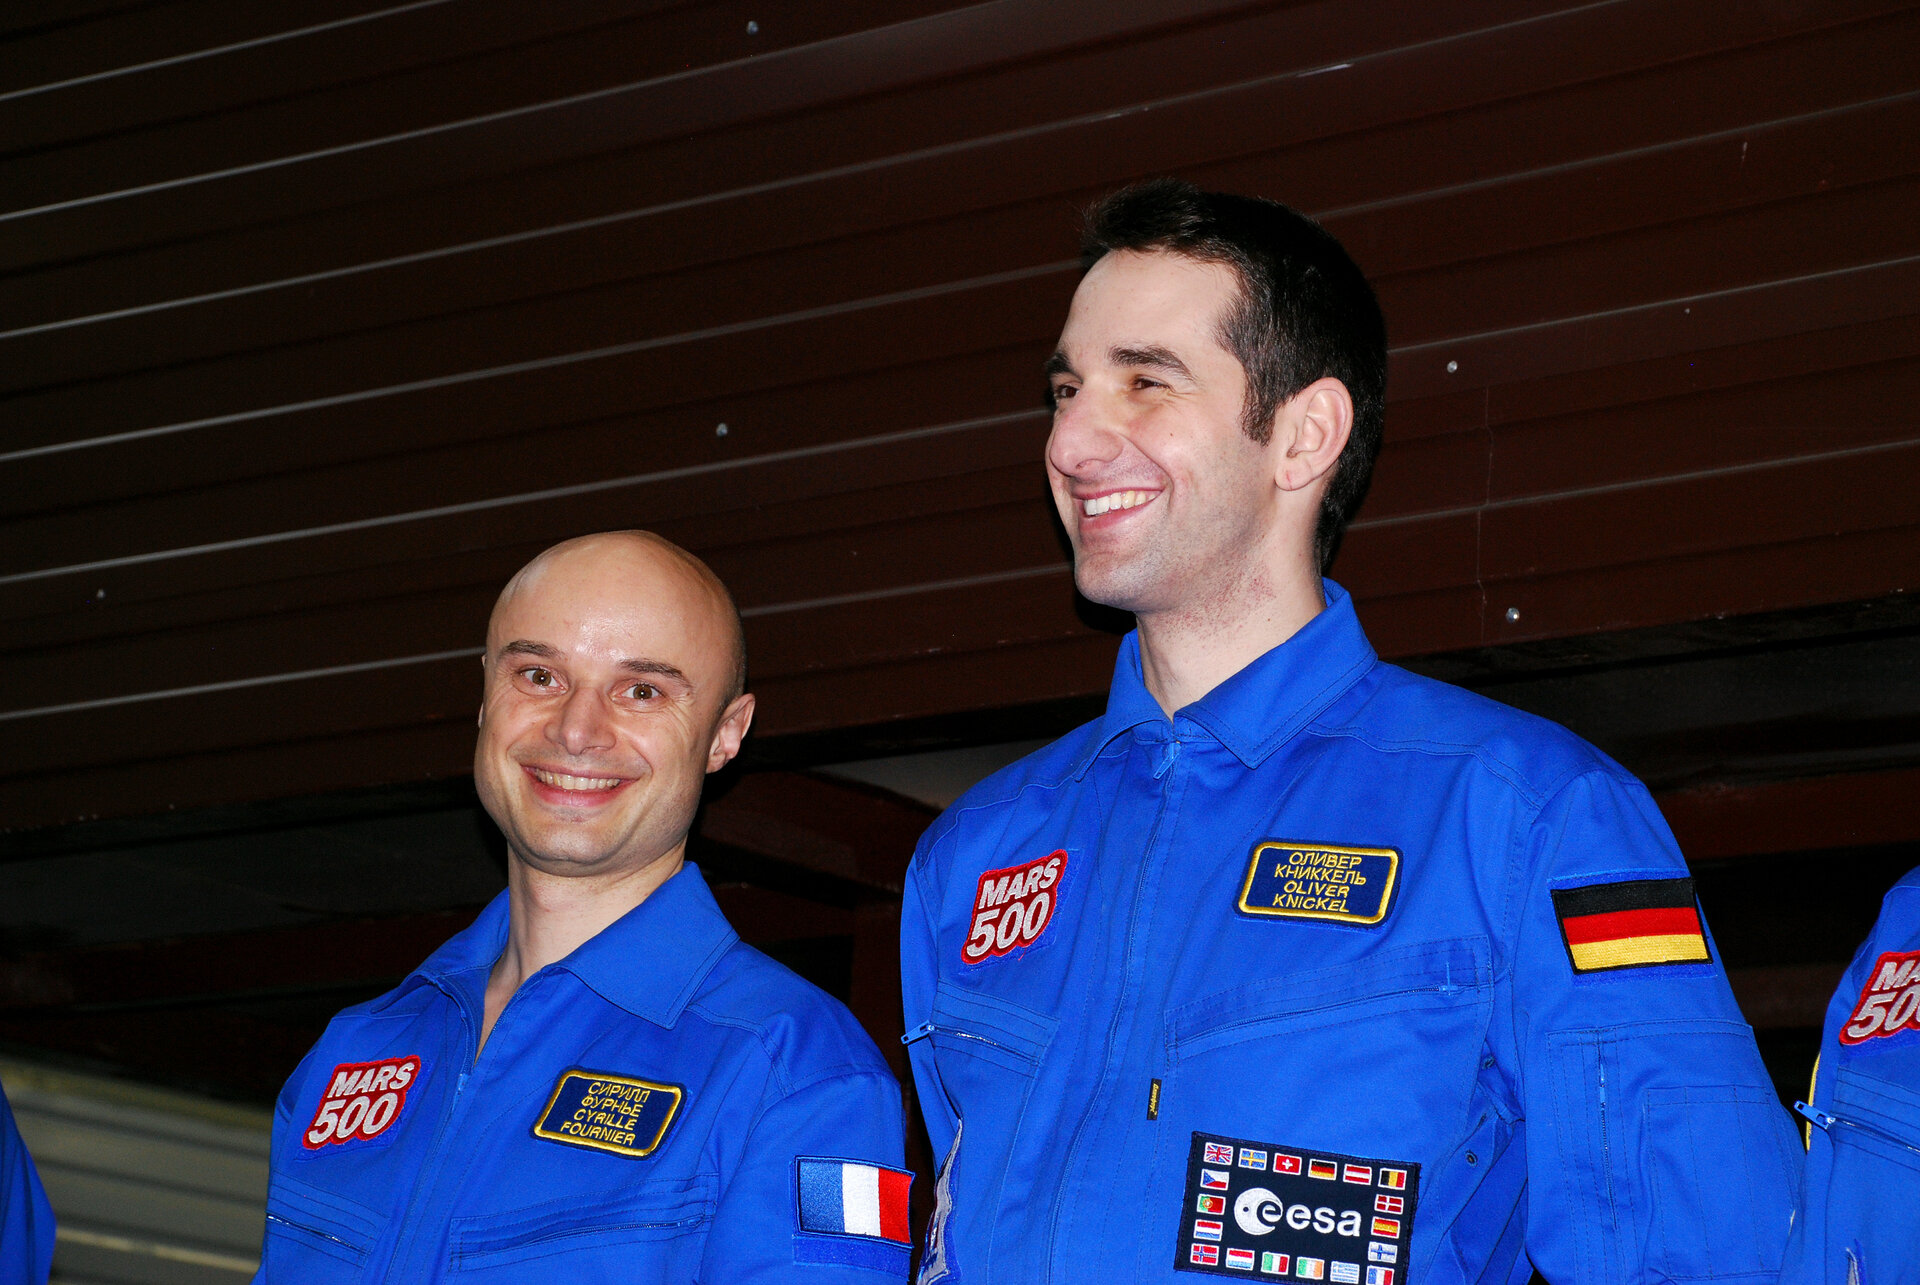 ESA-selected Mars500 participants Cyrille Fournier and Oliver Knickel